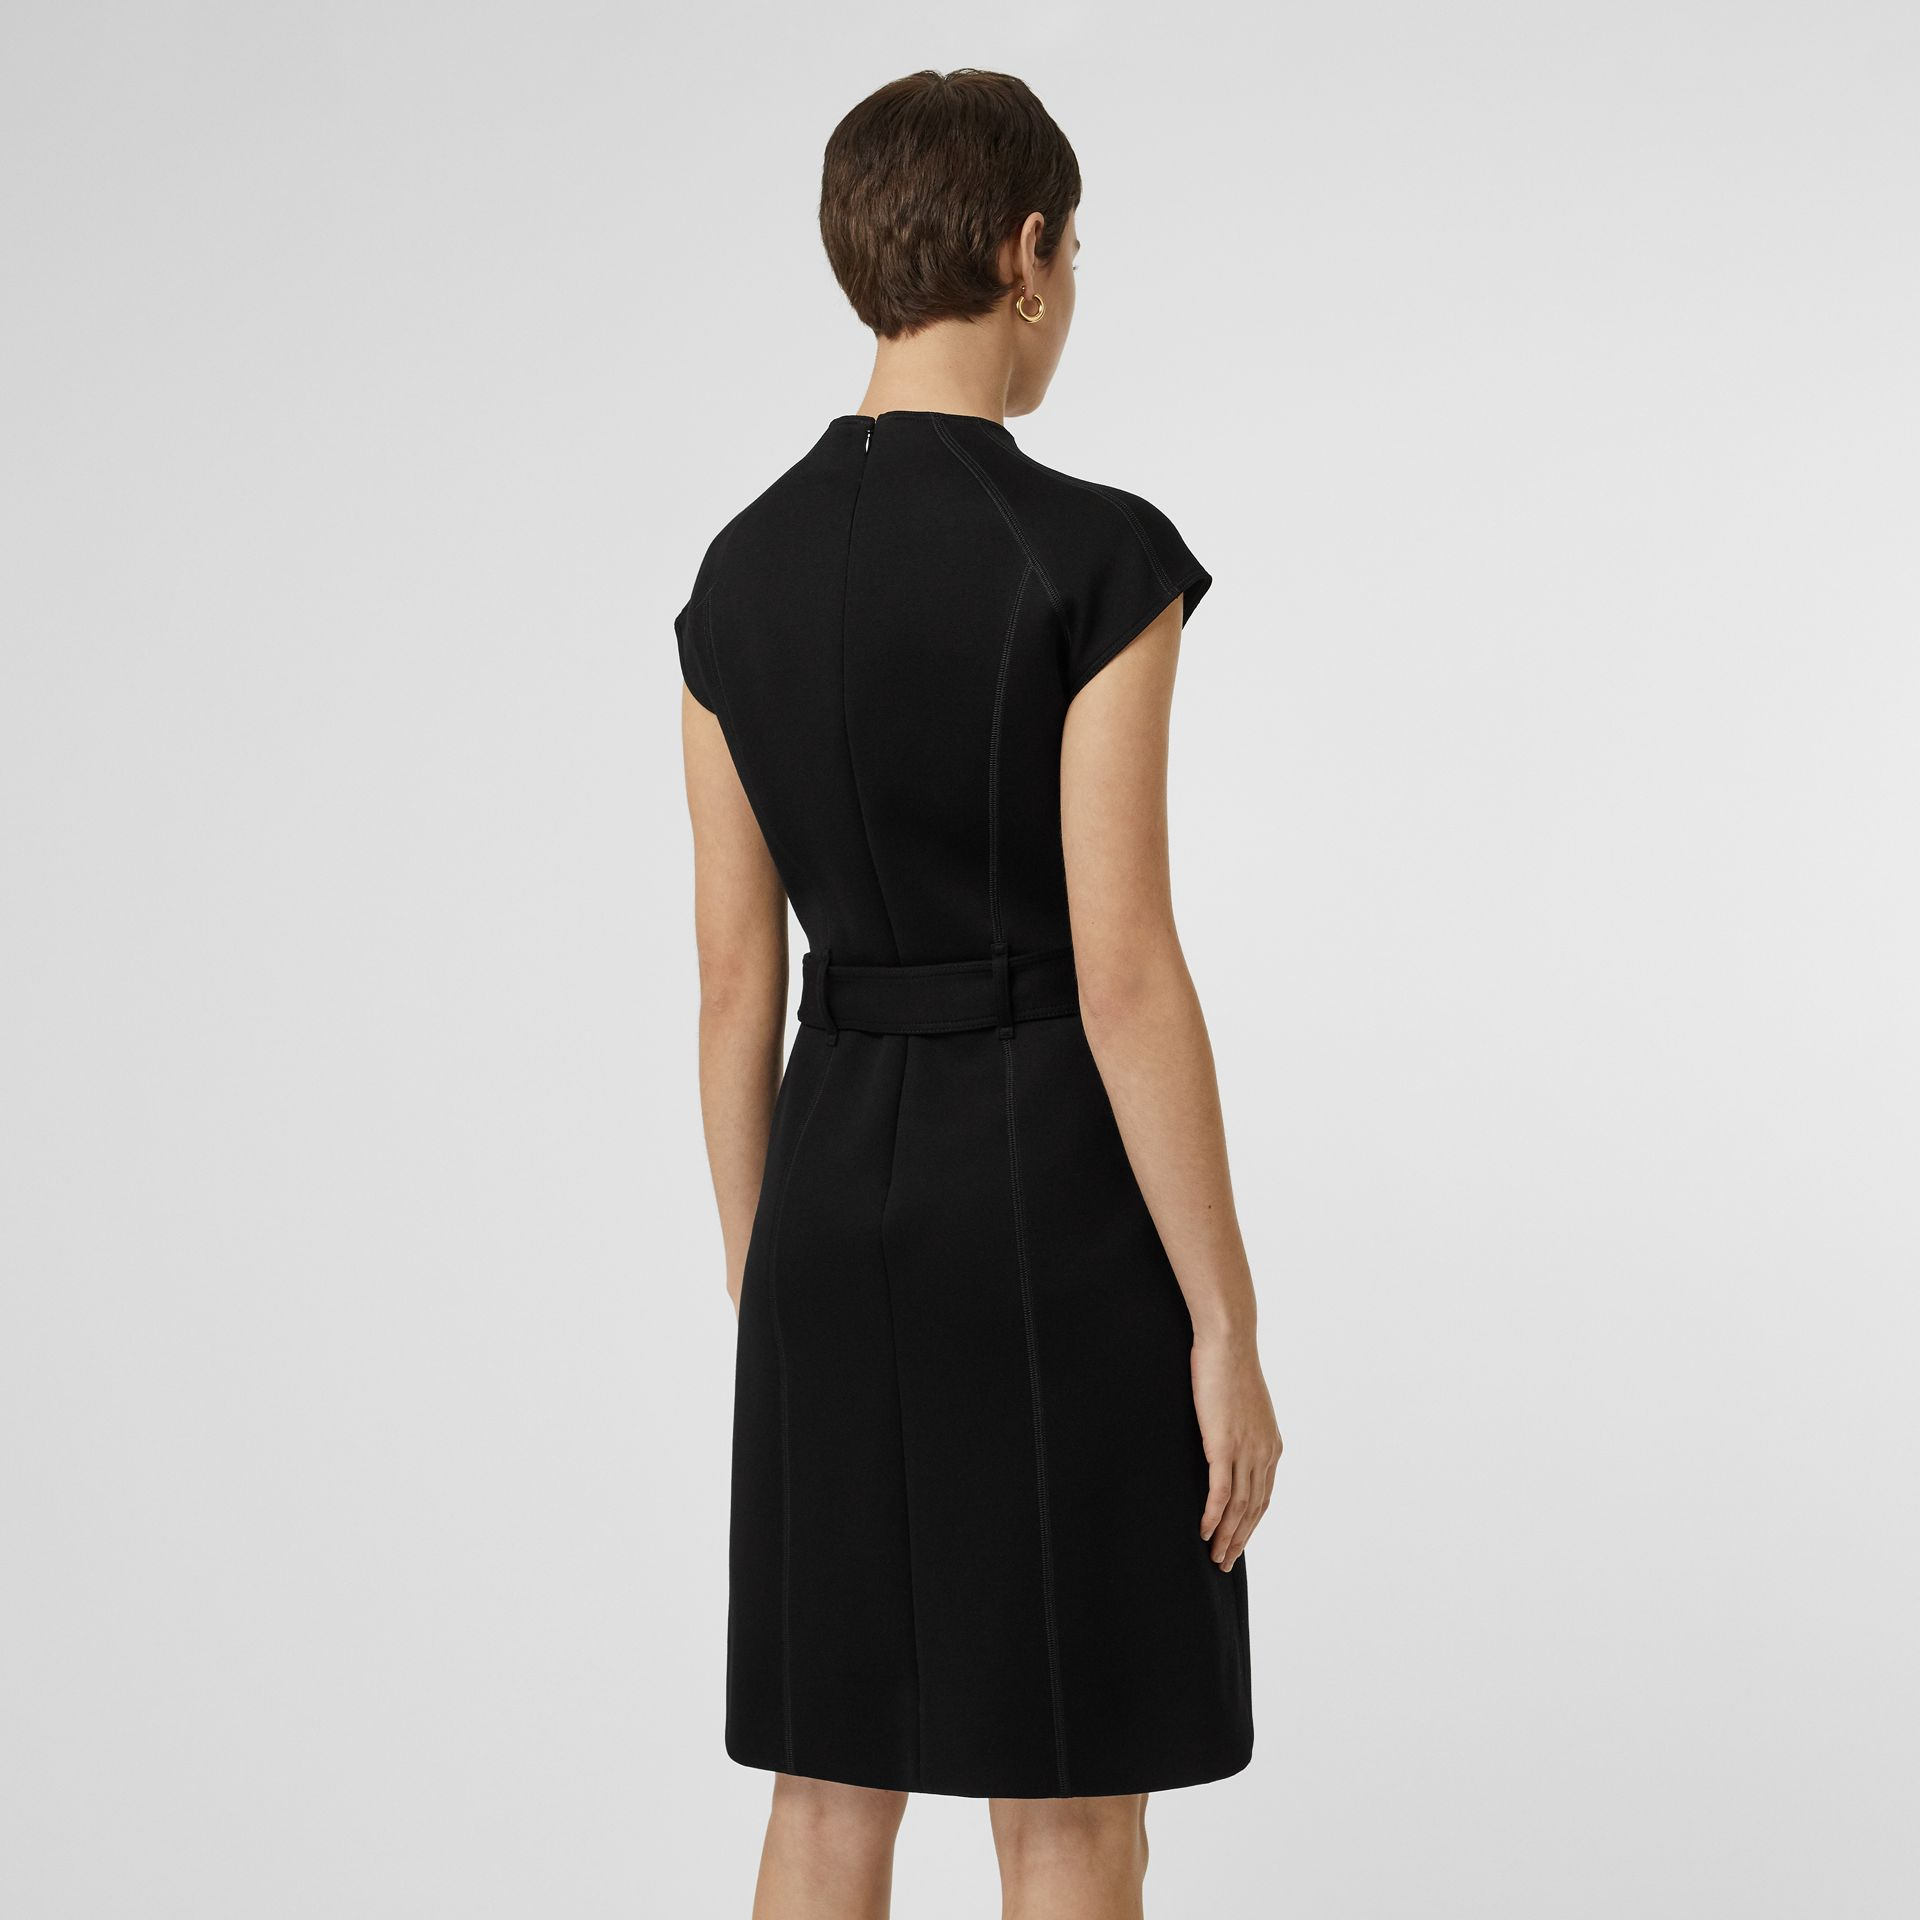 D-ring Detail Bonded Jersey Dress in Black - Women | Burberry Canada - gallery image 2